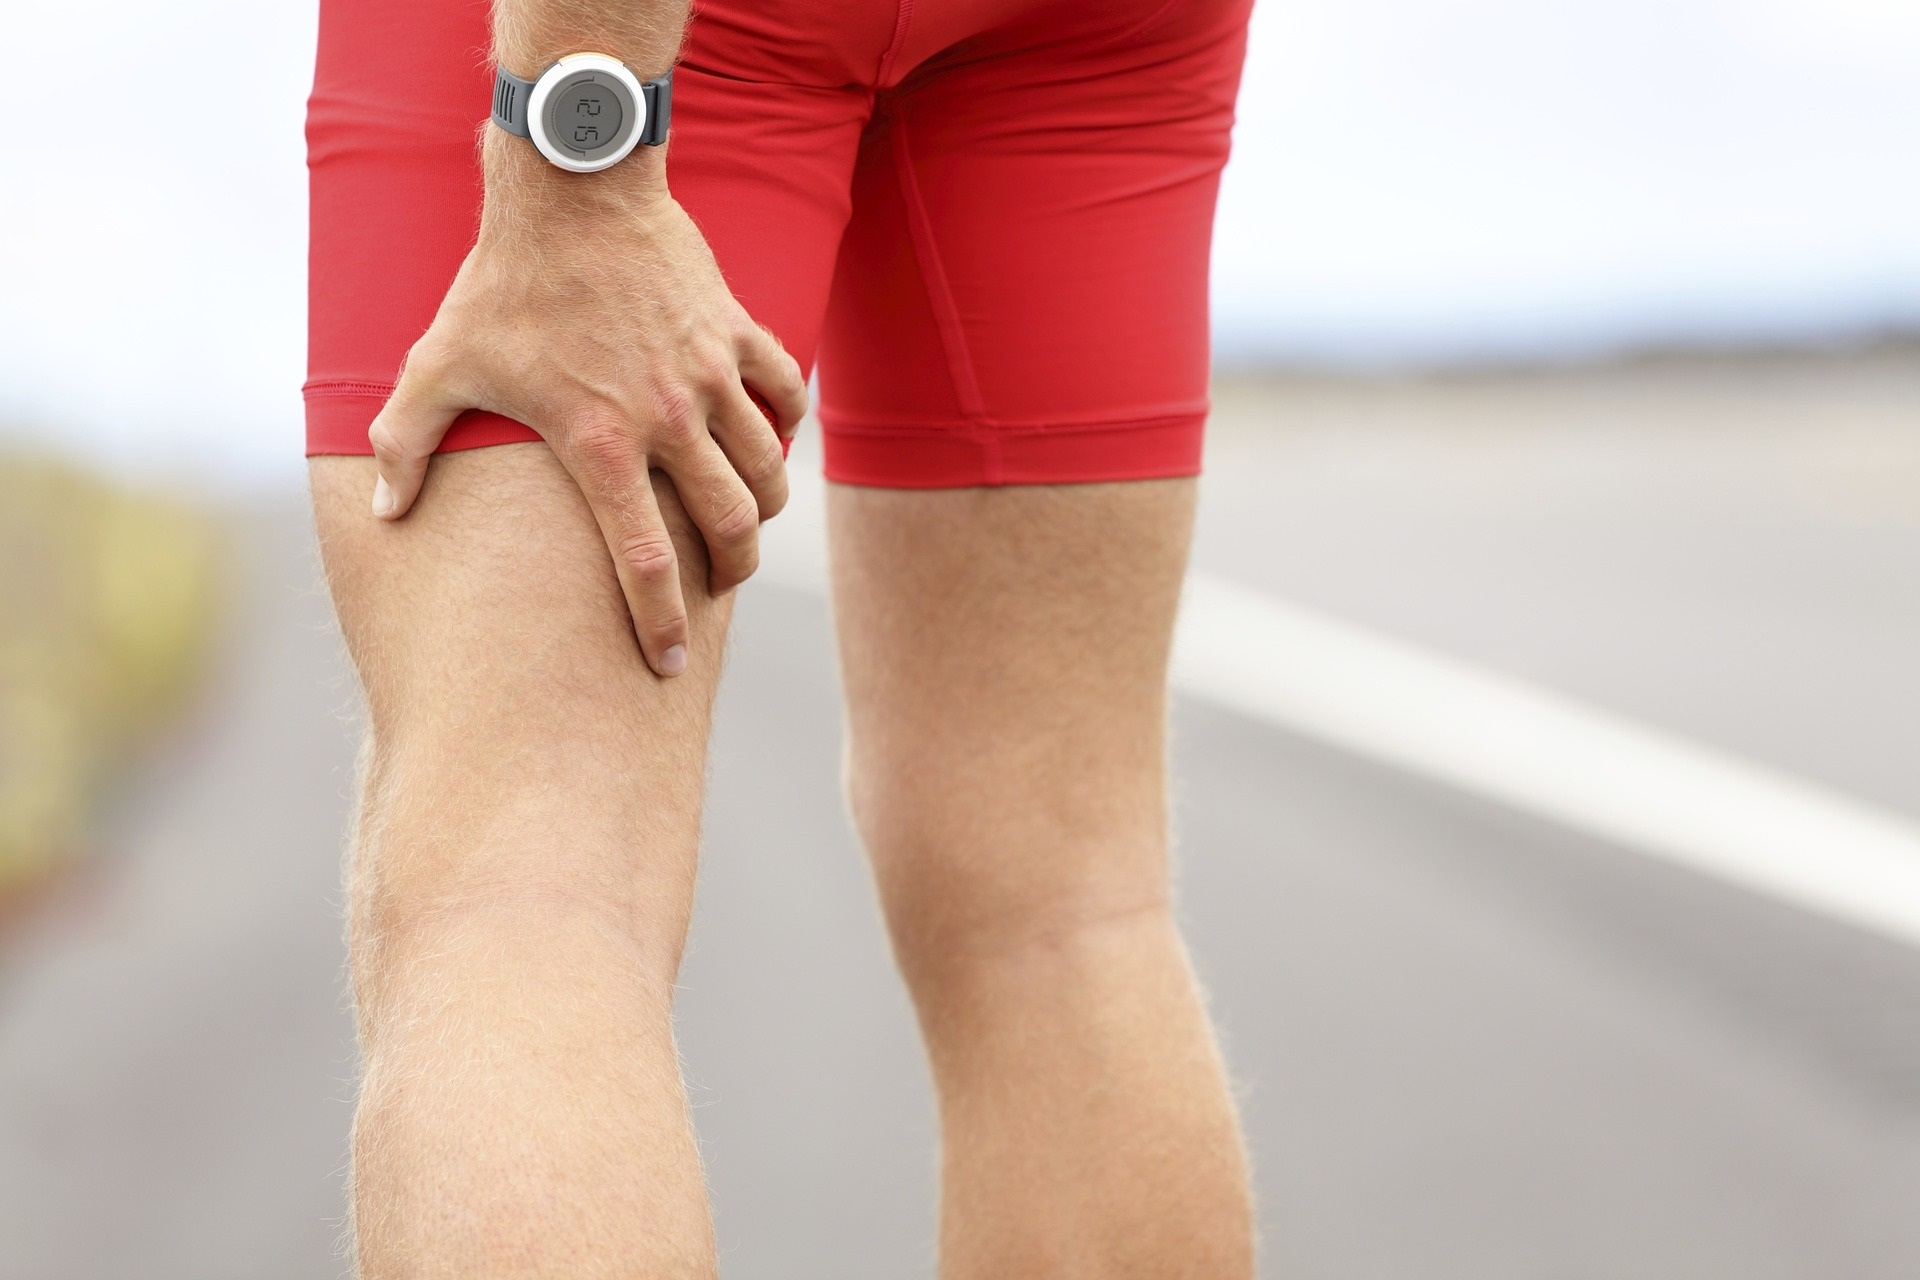 Hamstring Injuries, Hamstring Causes And Treatment, RMT Hamstring Injury, Hamstring RMT Treatment, Hamstring Massage Therapy, Hamstring RMT Vaughan Ontario Massage,